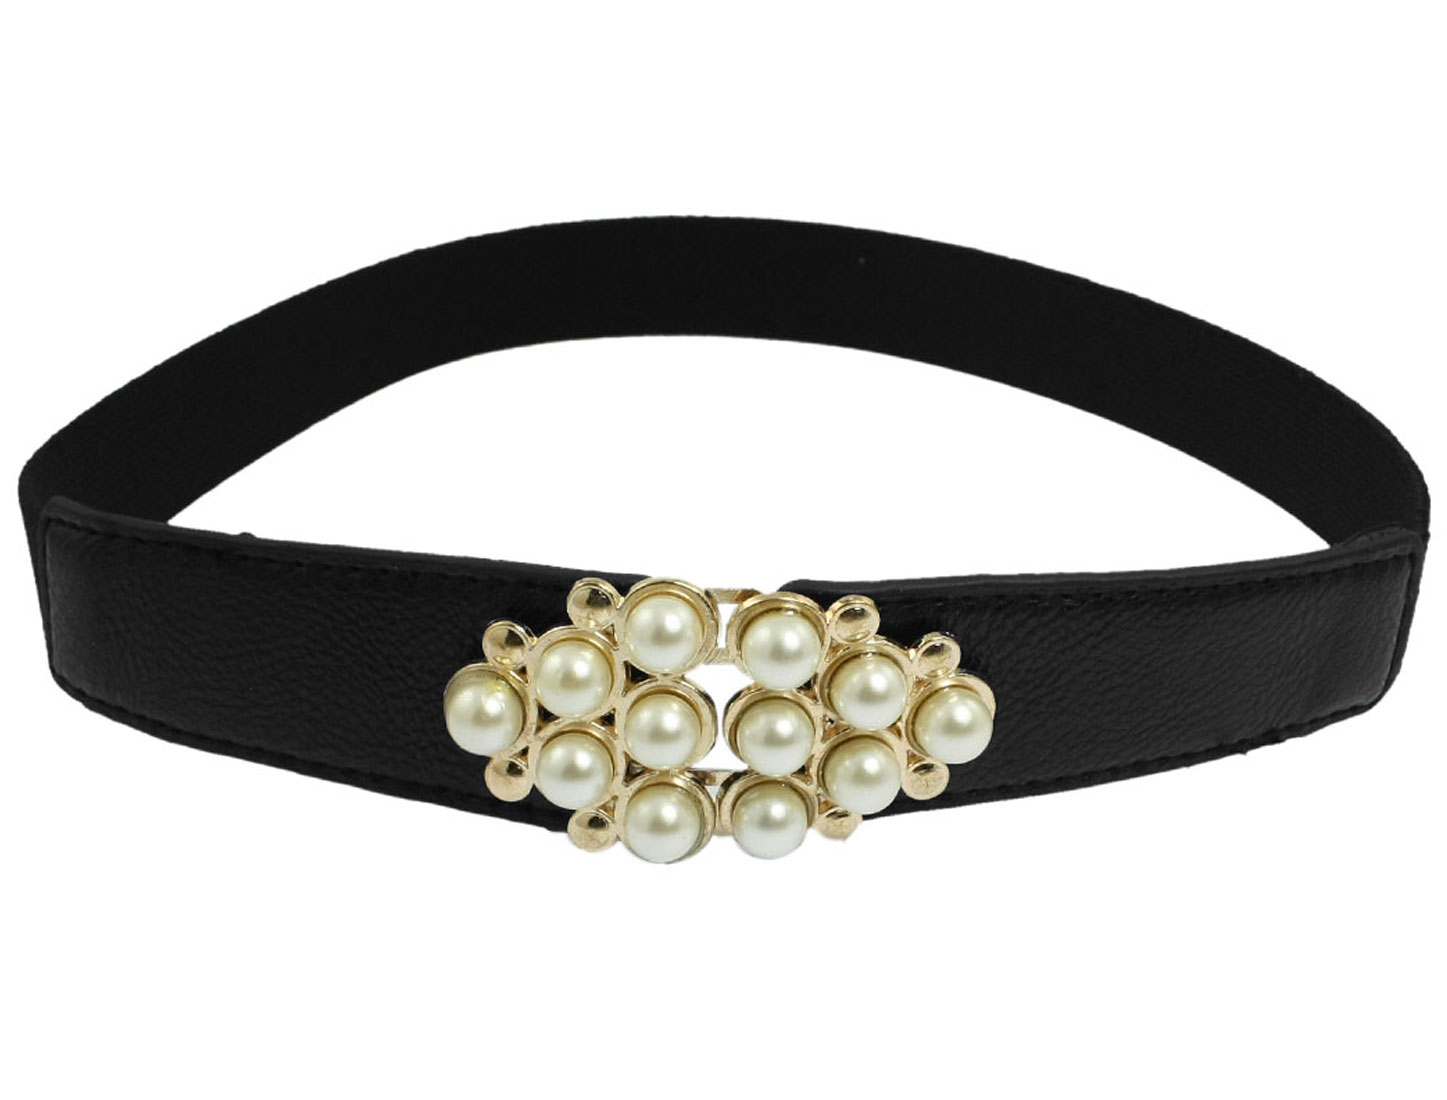 Faux Pearl Adorn Interlocking Buckle Black Stretch Waist Belt Band for Ladies